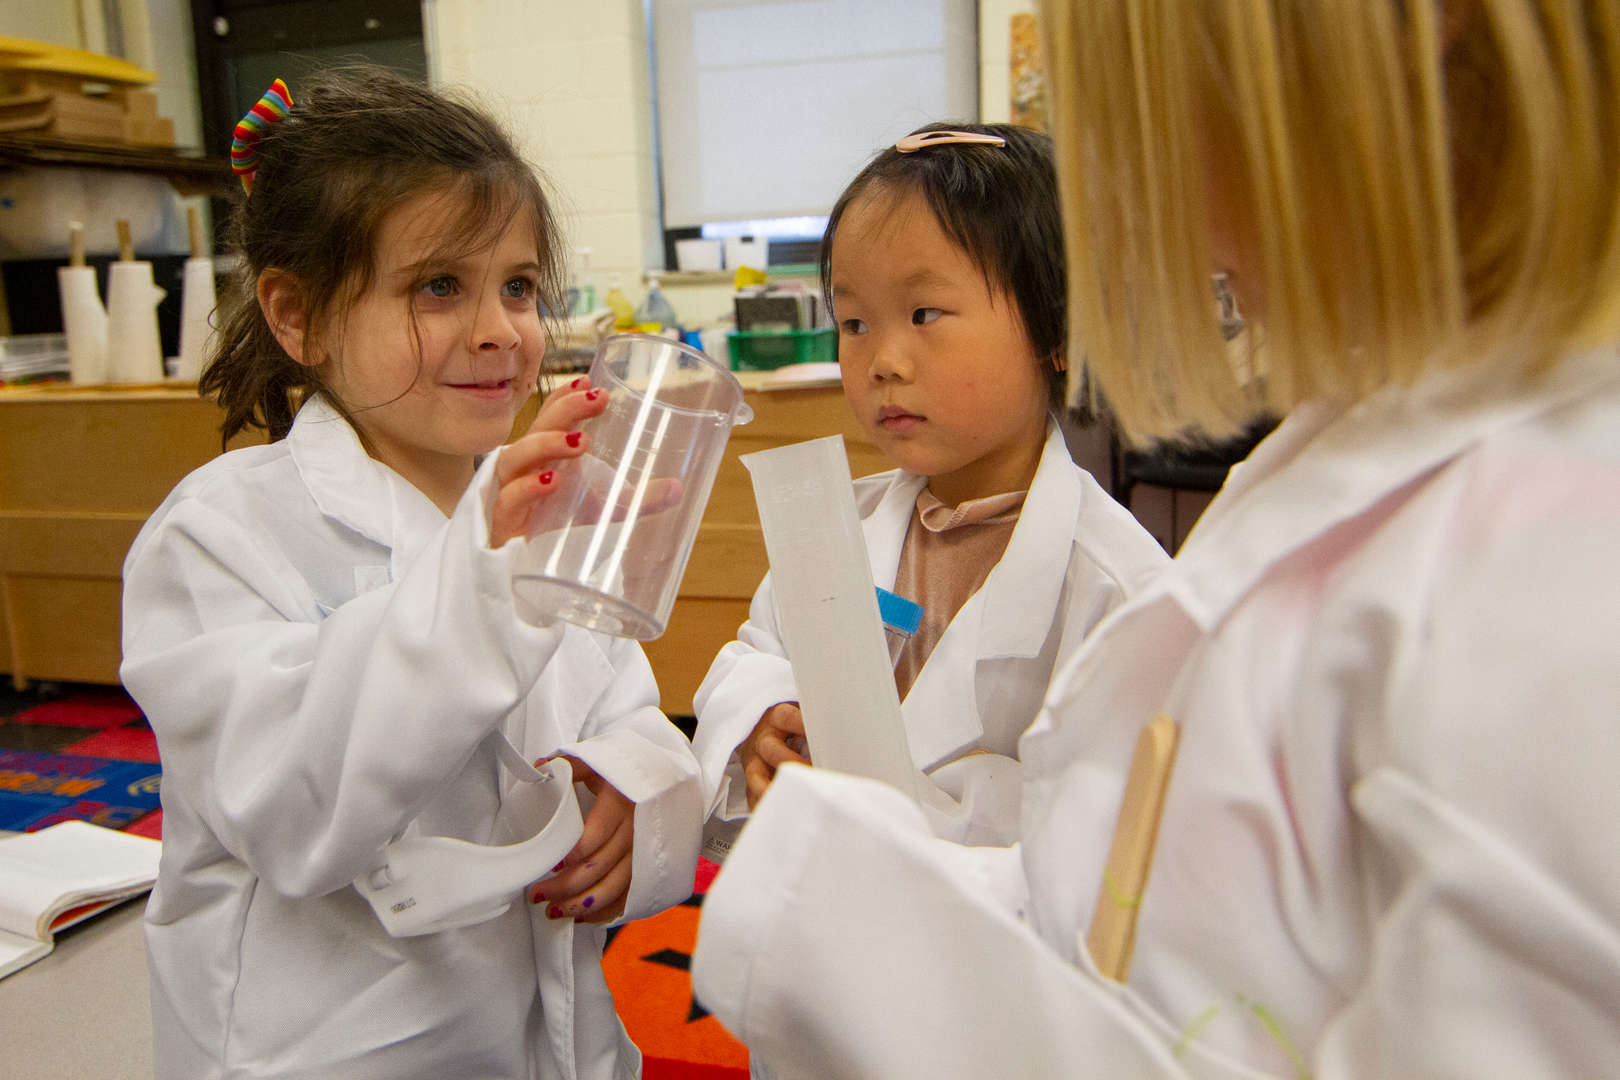 Girls conducting science experiment